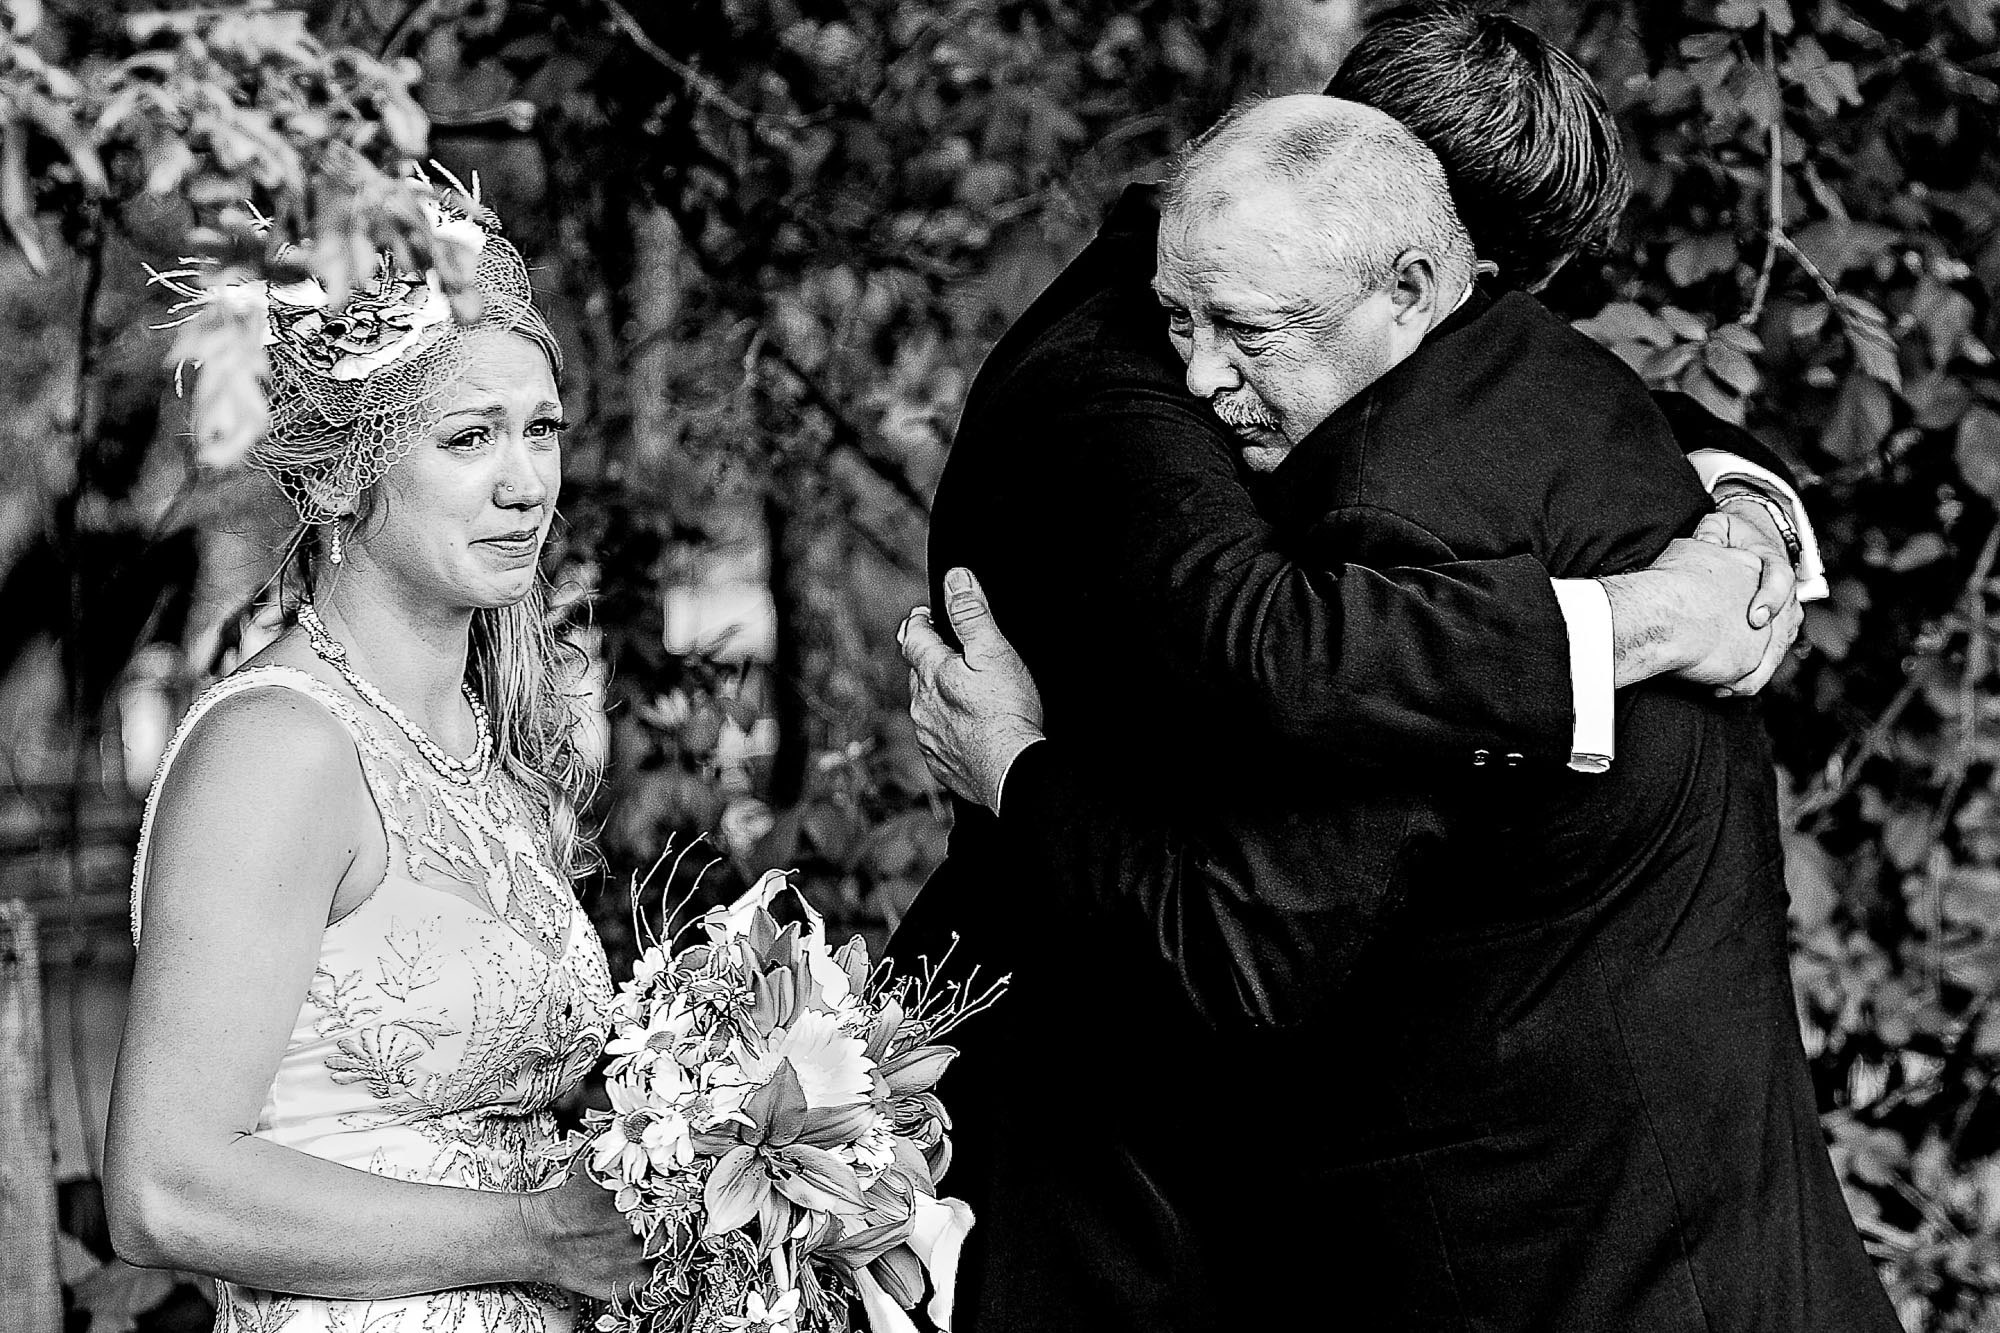 Bride cries while father hugs groom photo by JOS Studios : Jos and Tree Woodsmith